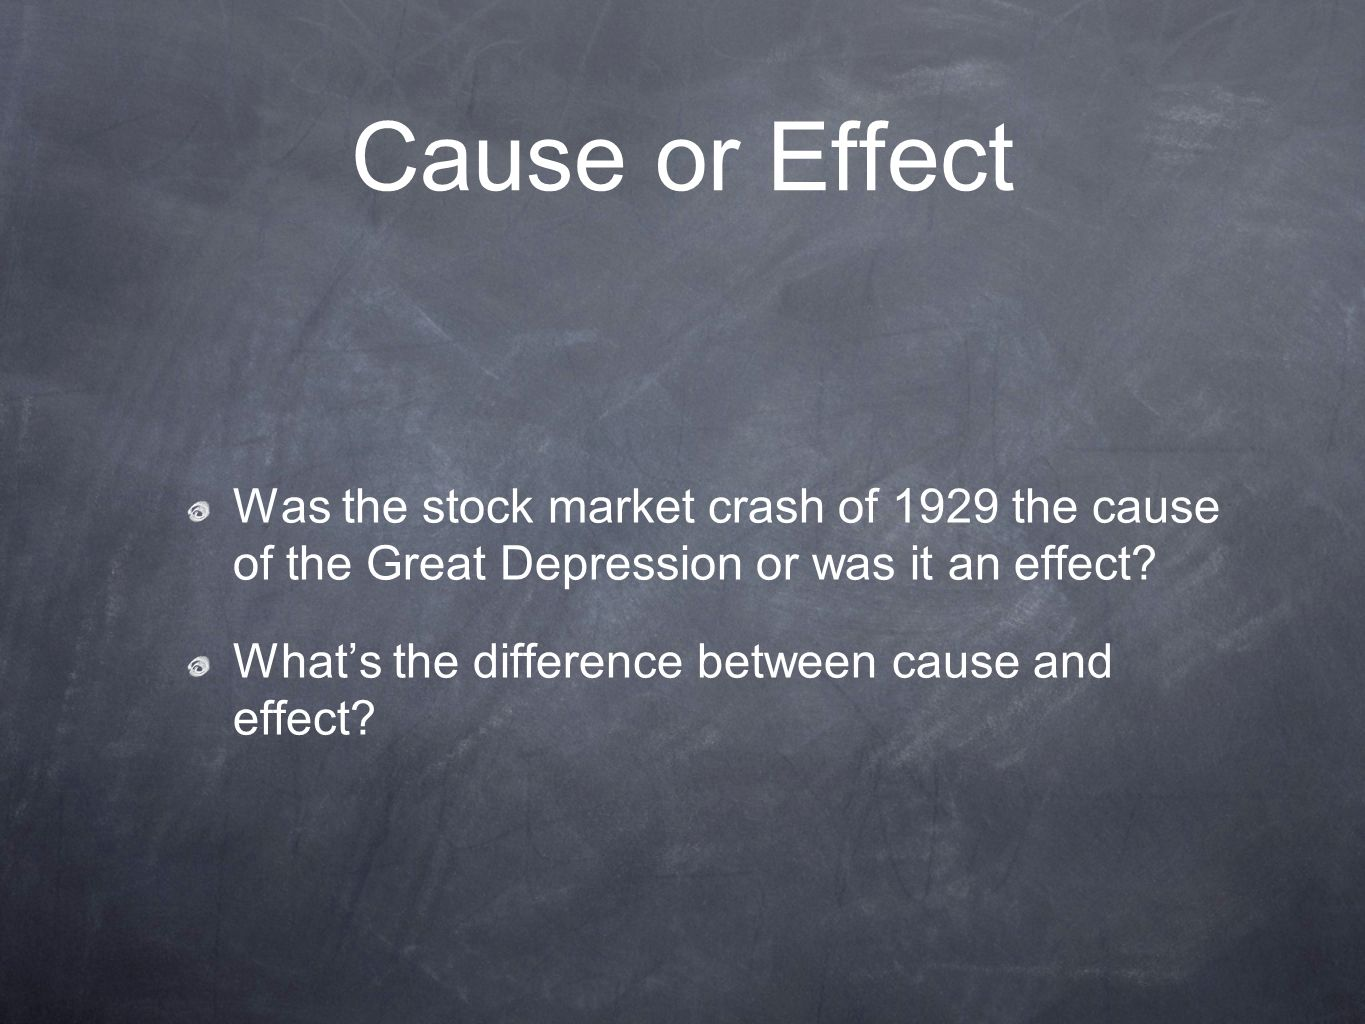 Cause and Effect Essay Example: Great Depression